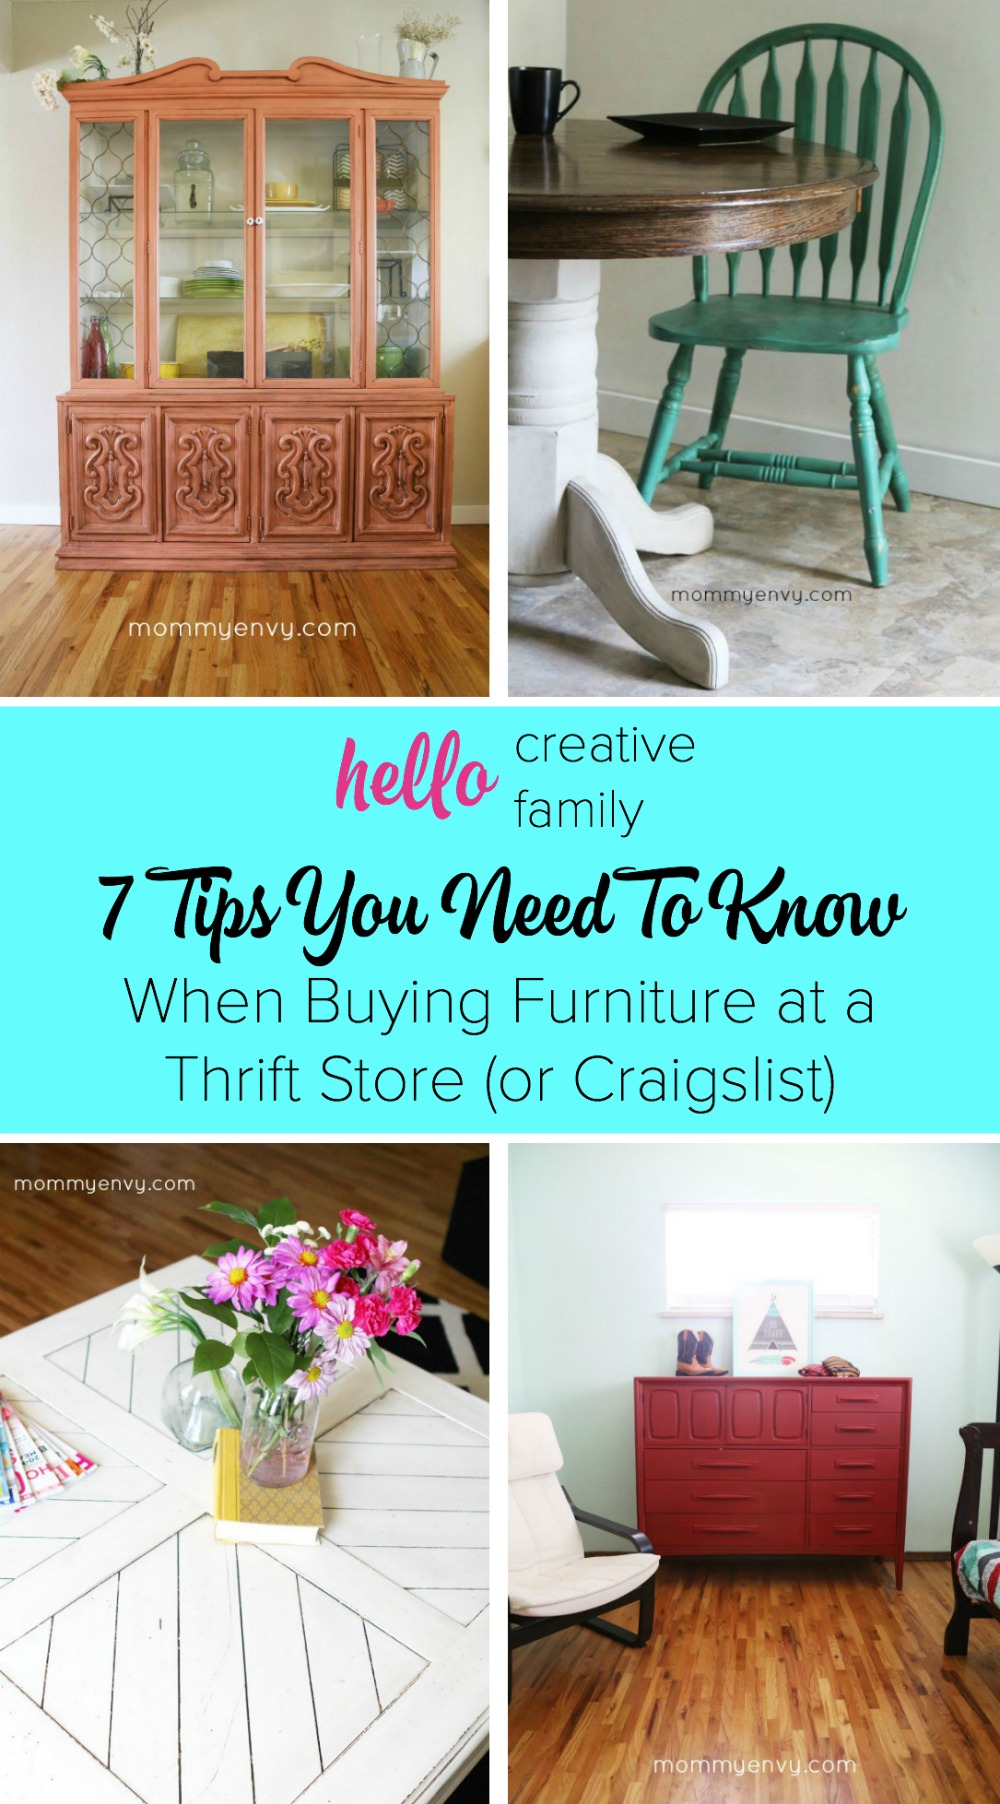 7 Tips You Need To Know When Buying Furniture At A Thrift Store (or  Craigslist)